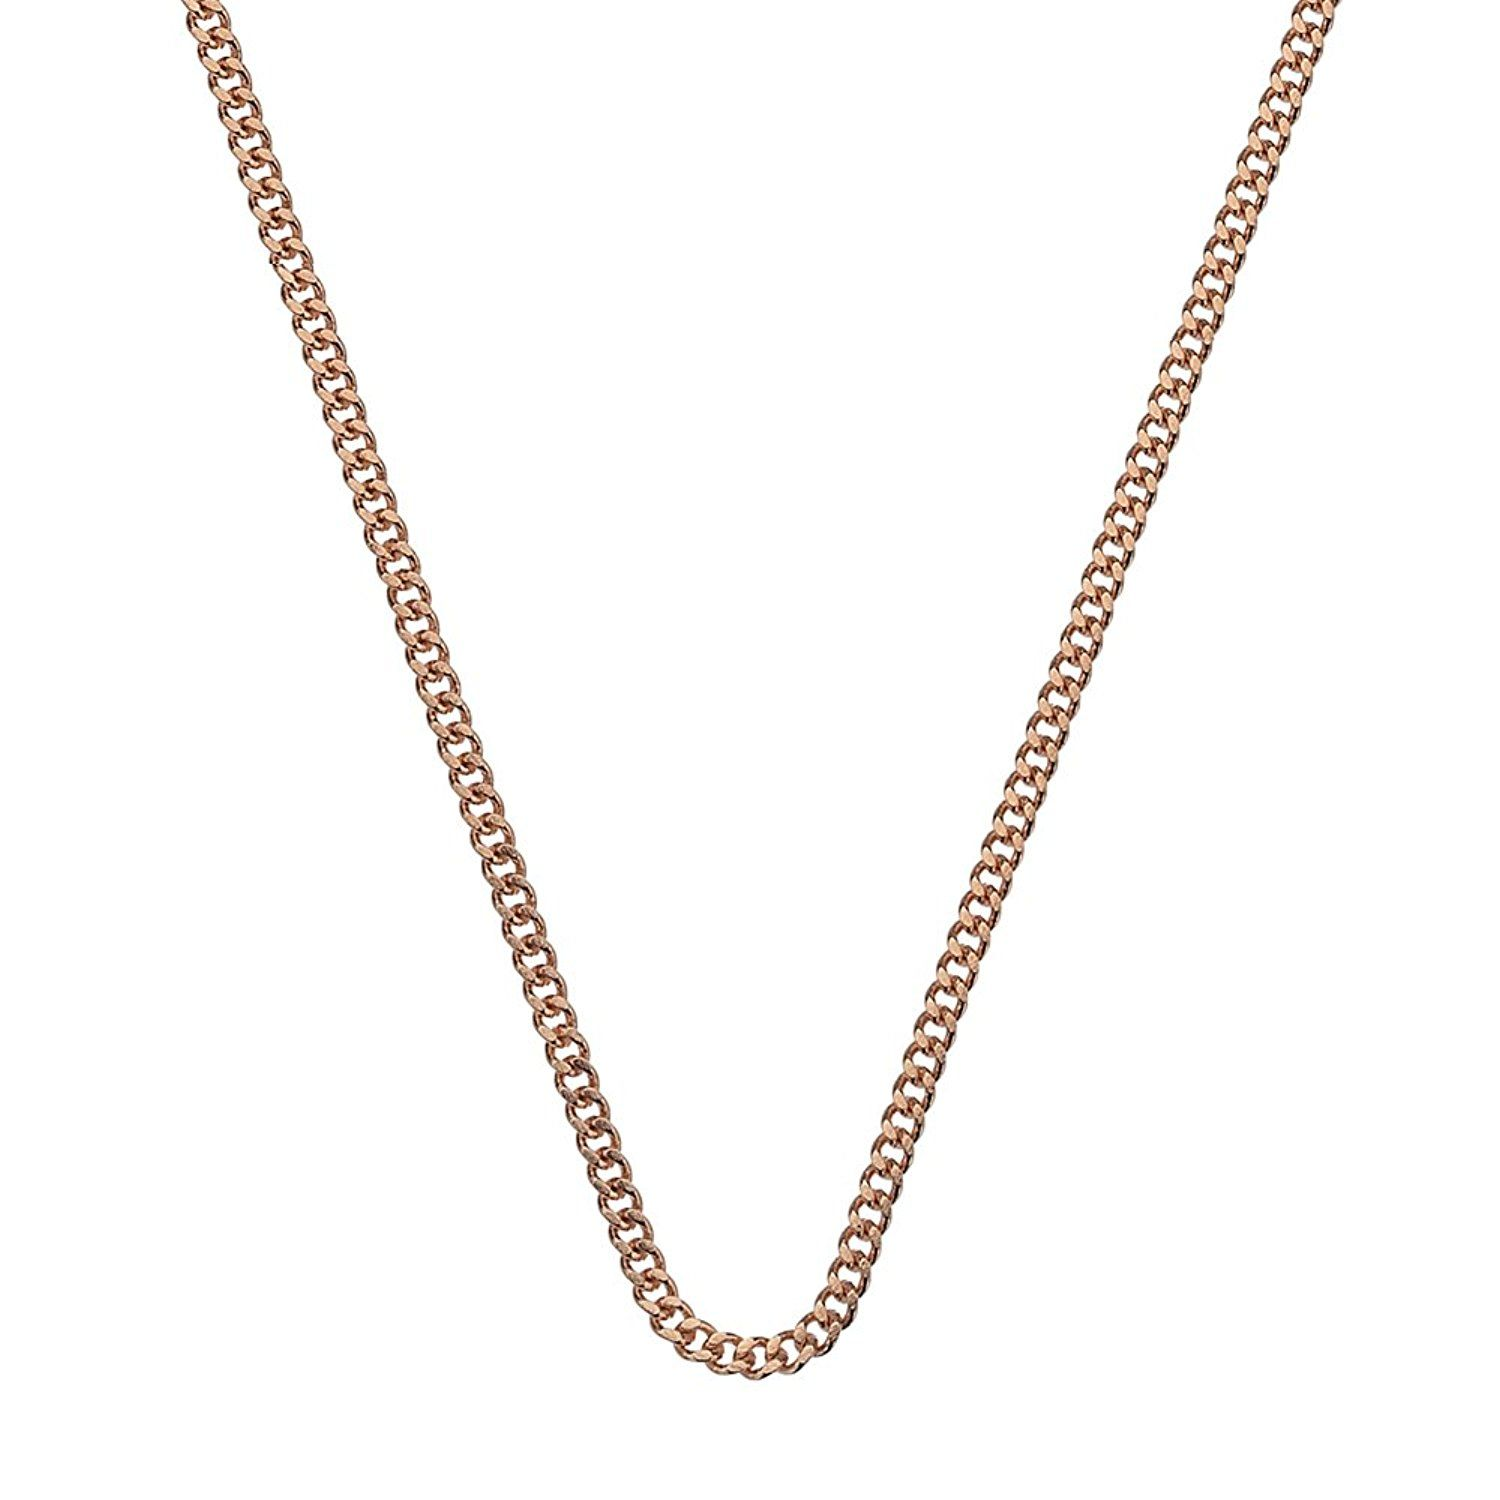 Emozioni Rose Gold Plated Sterling Silver Belcher Chain of 89cm